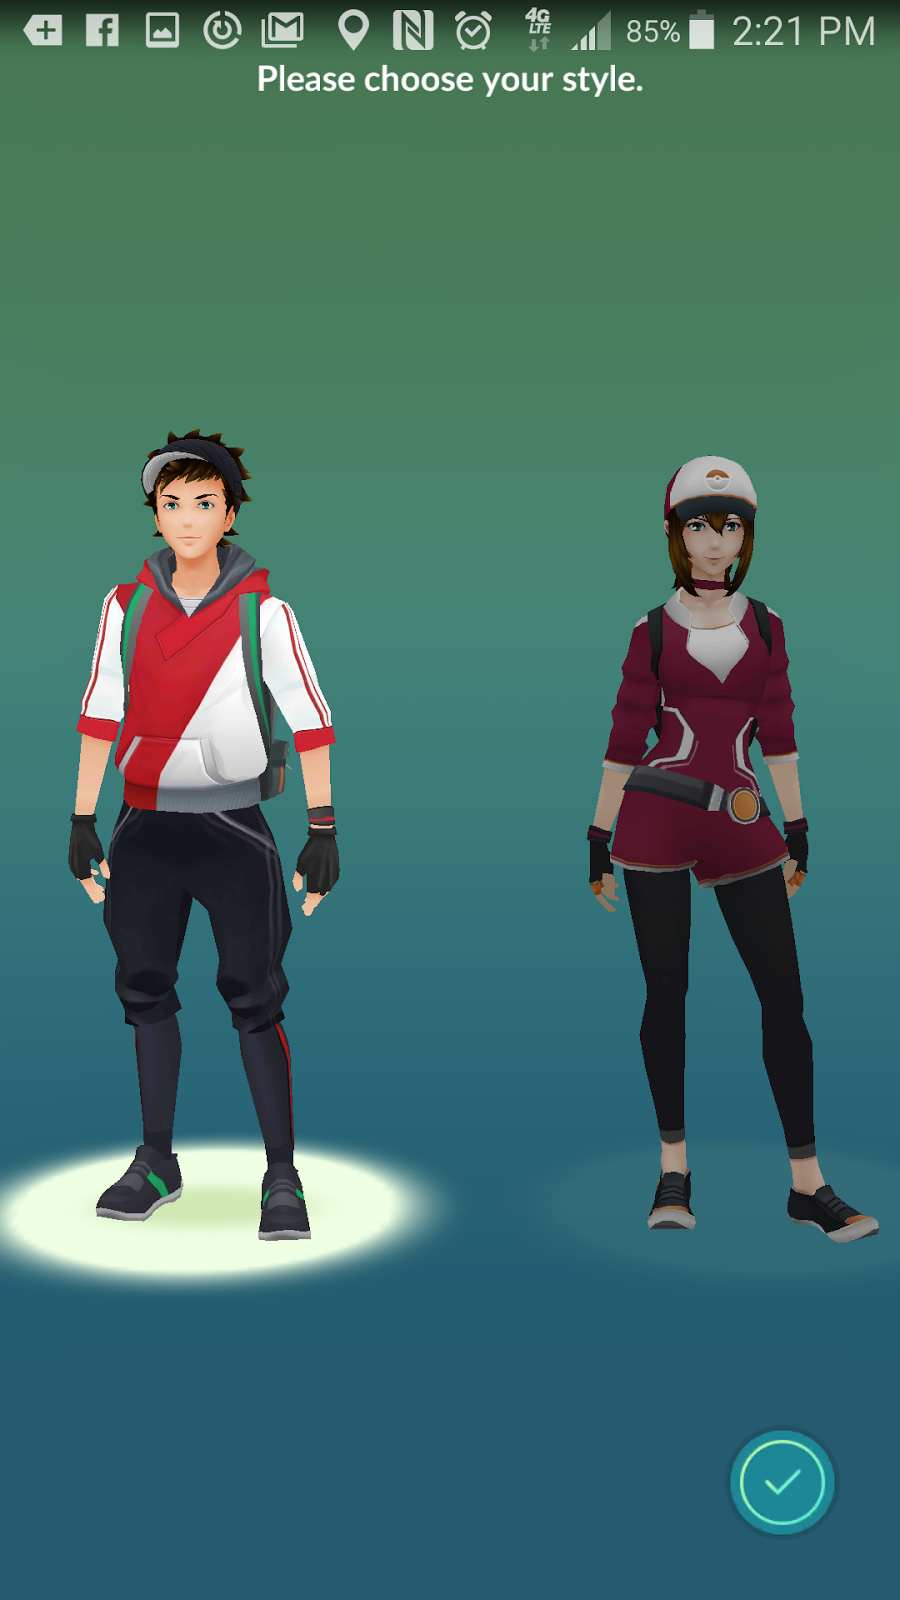 Male and Female characters